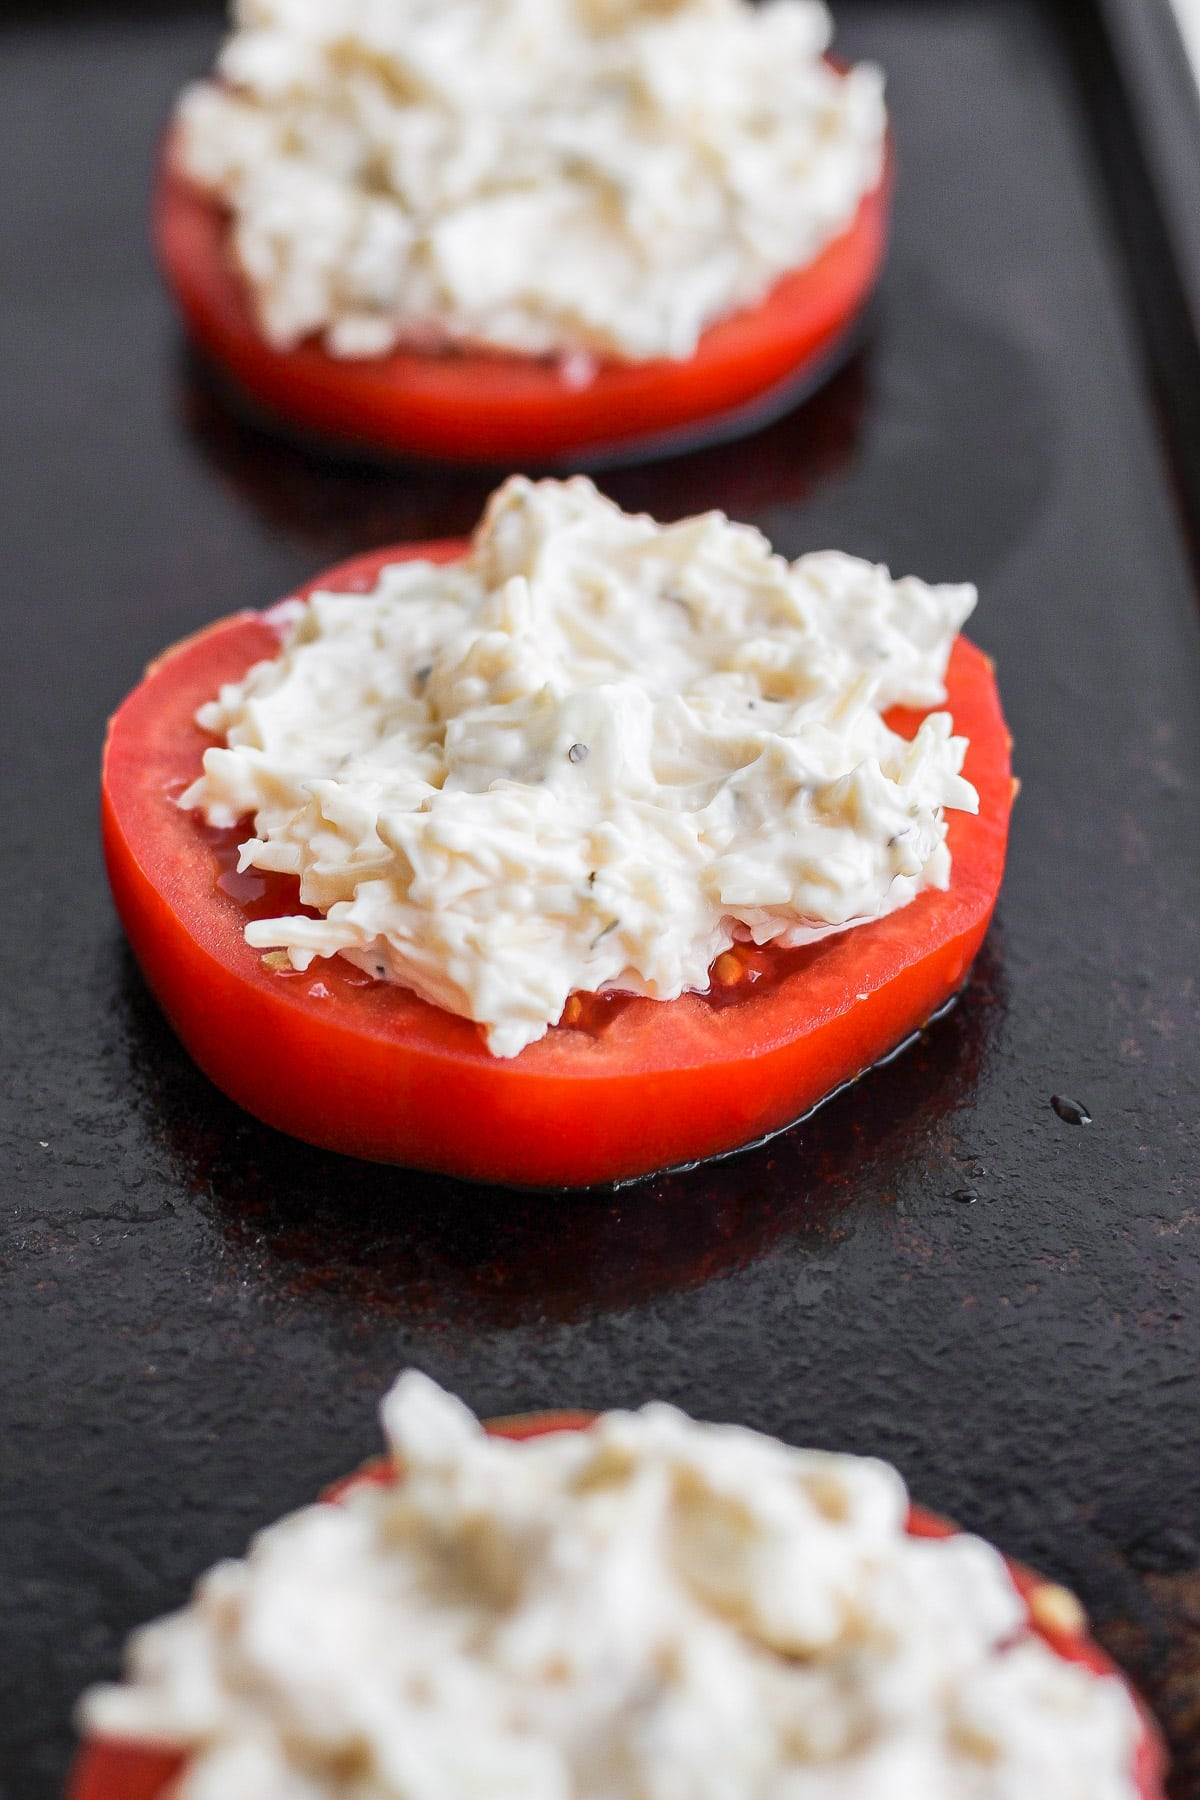 Sliced tomatoes with a mayo parmesan mixture on top.